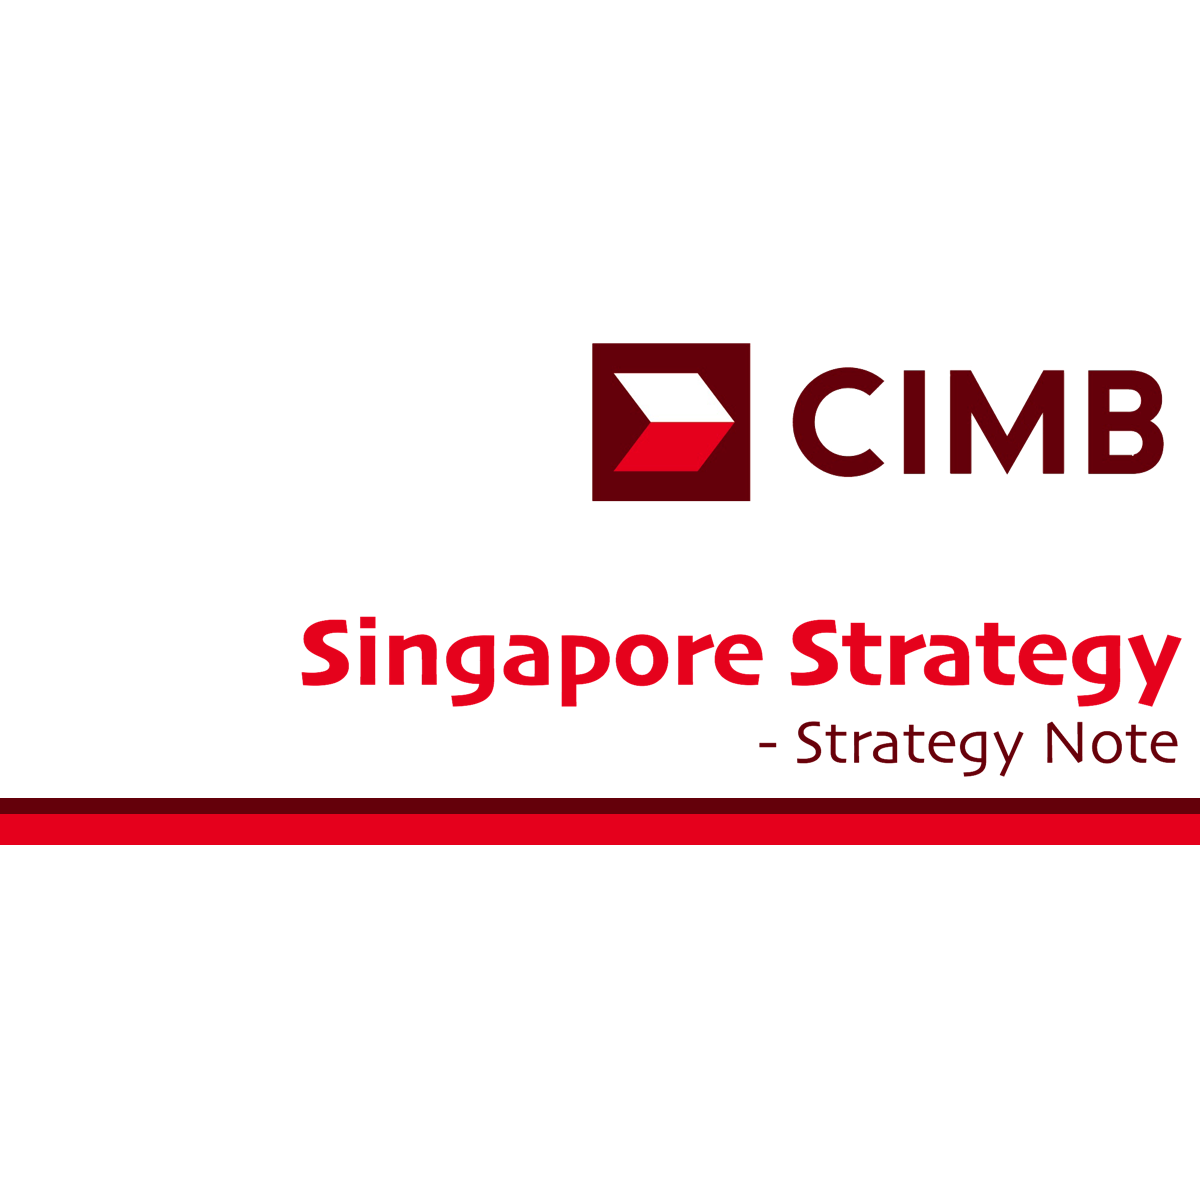 Singapore Strategy - CIMB Research 2017-05-30: Uneven Hopes